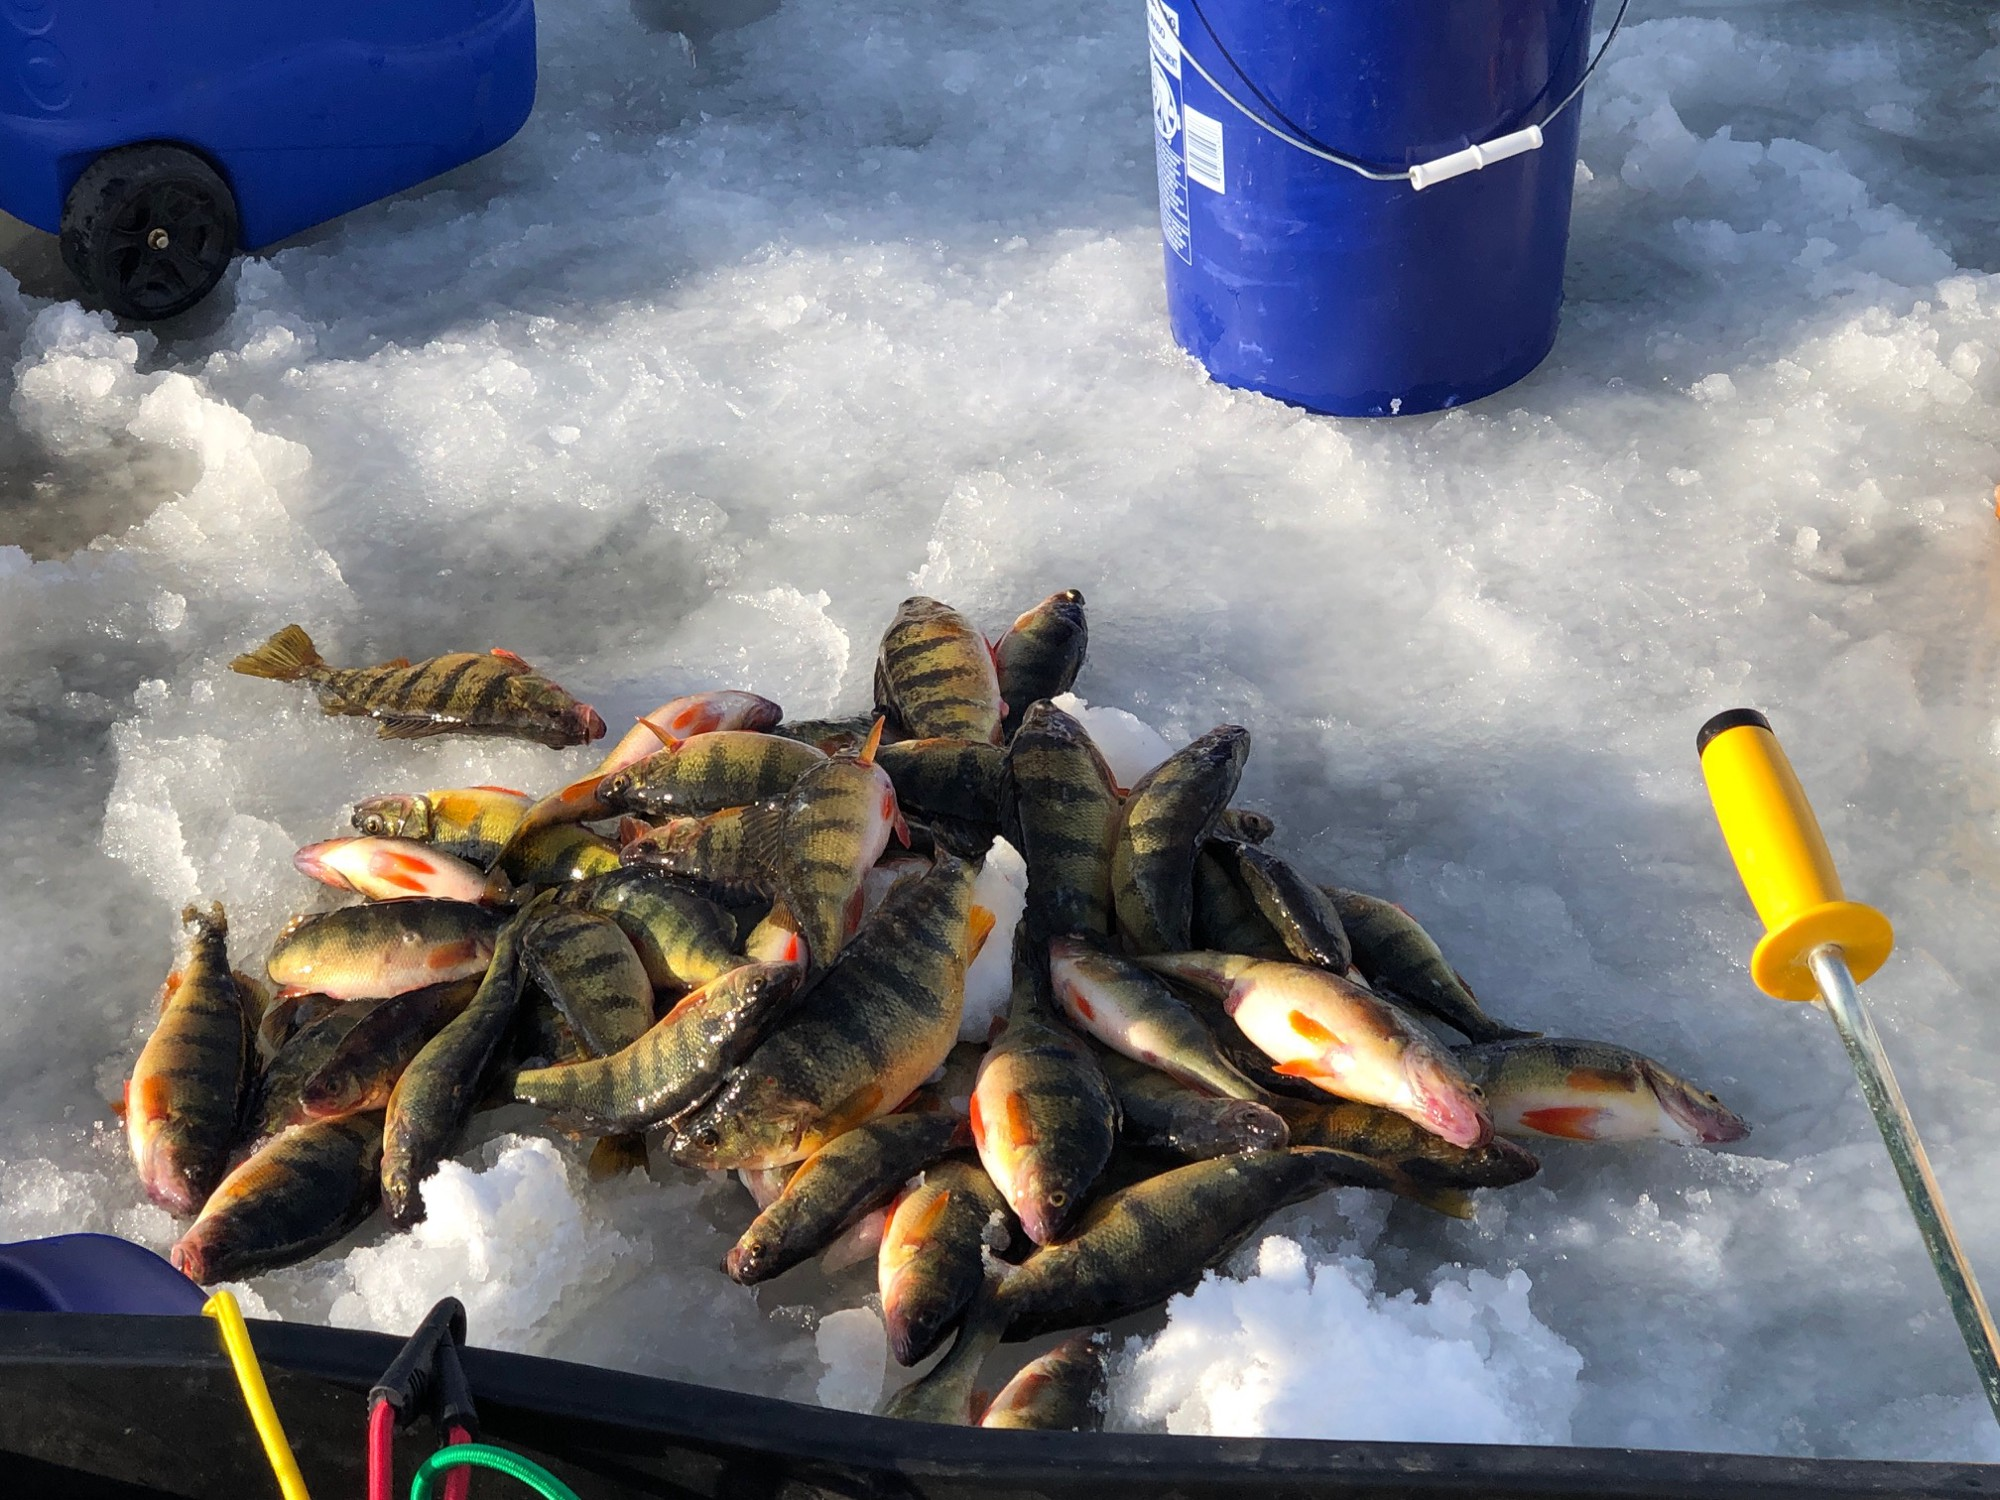 Perch are piled on the ice at a fishing hole.